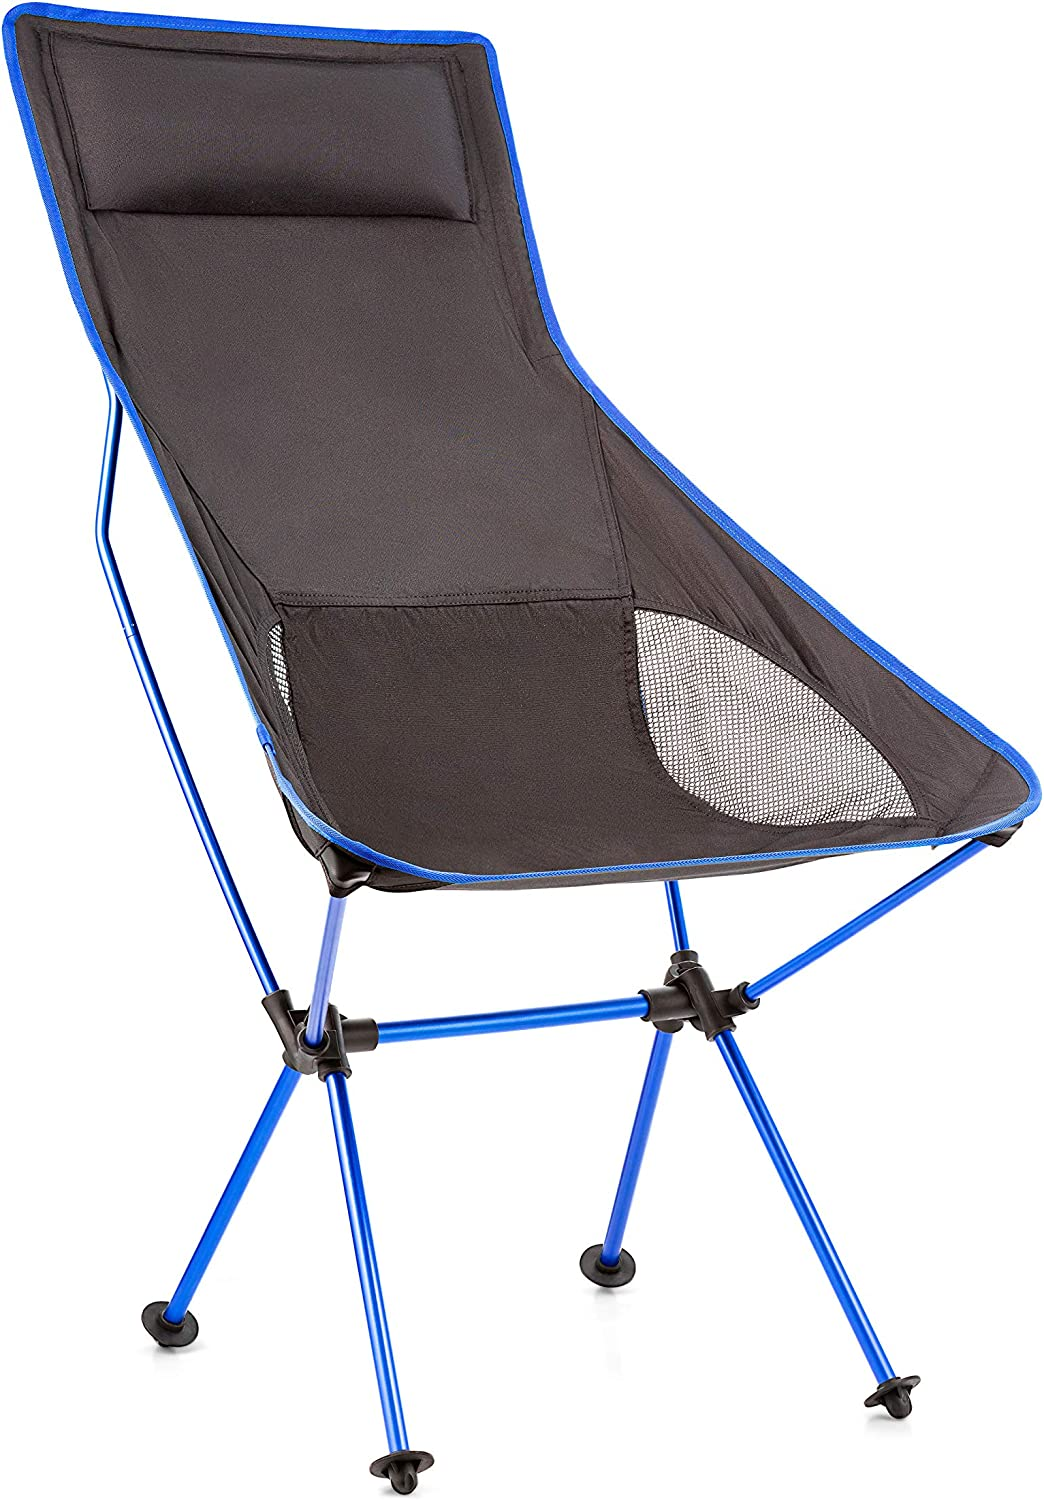 Wealers Ultralight Portable Folding Outdoor Camping Chair for Hiking Picnic Fishing with Carry Storage Bag